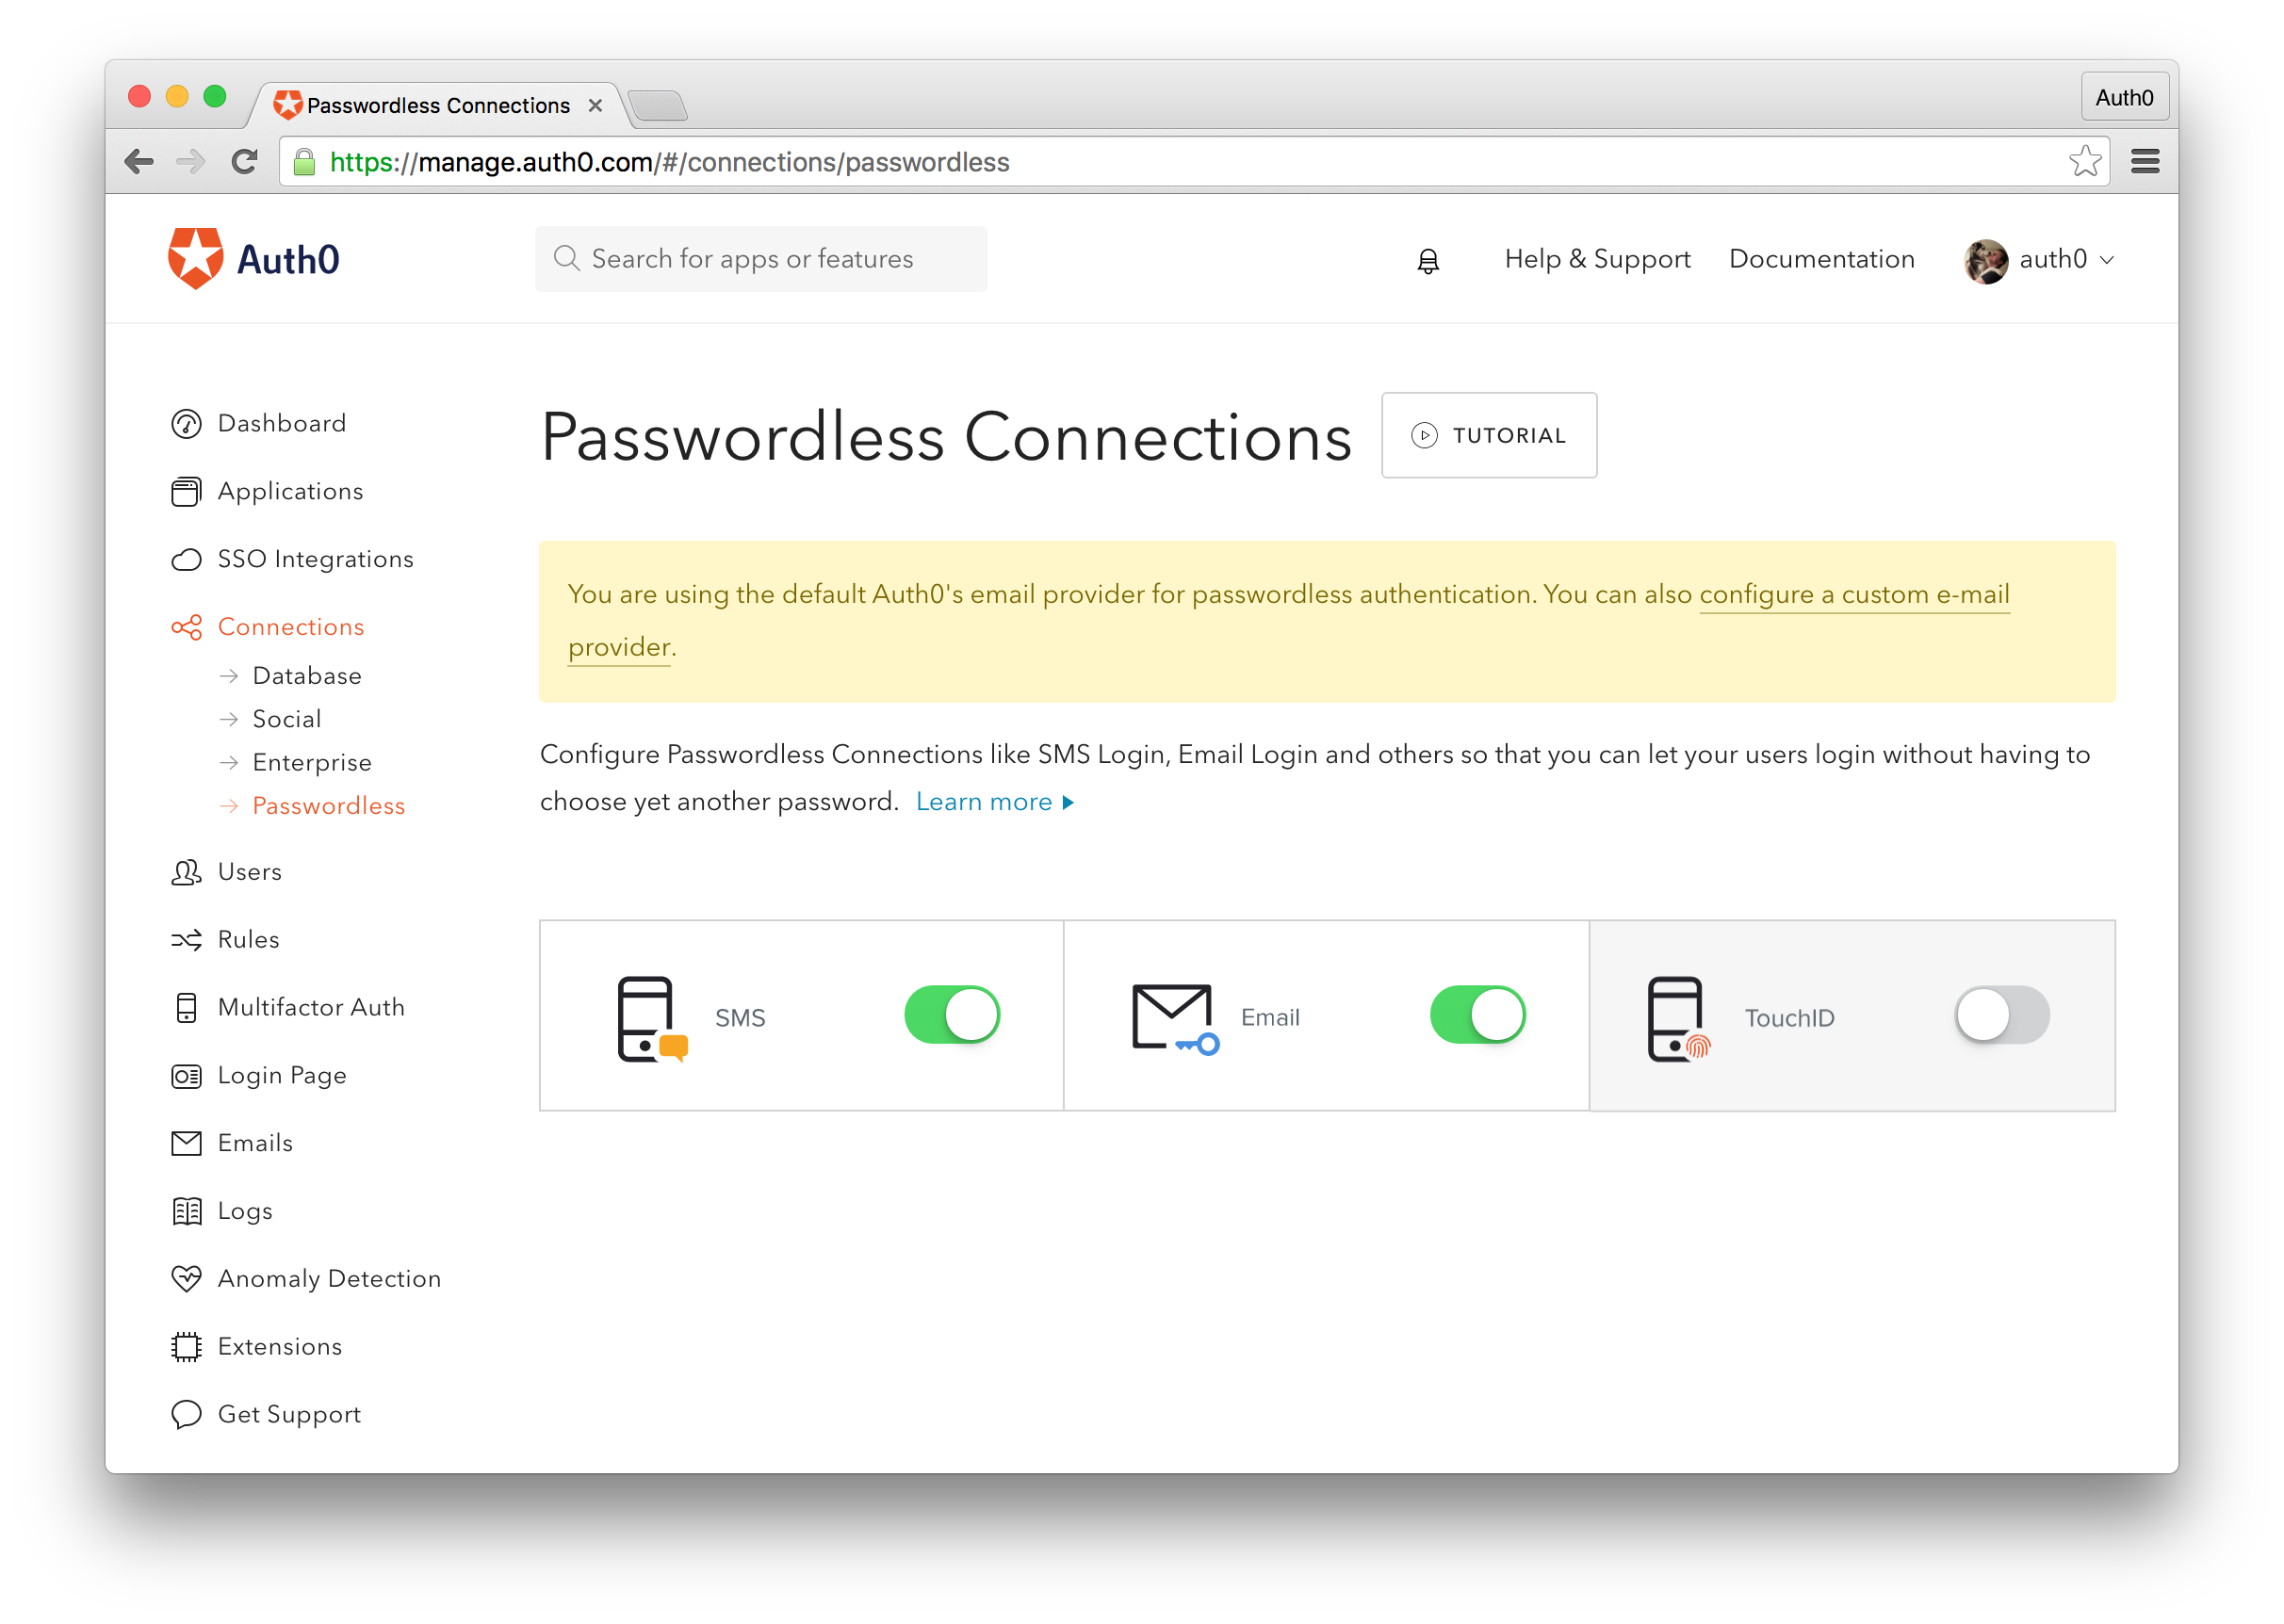 Auth0 Passwordless Options